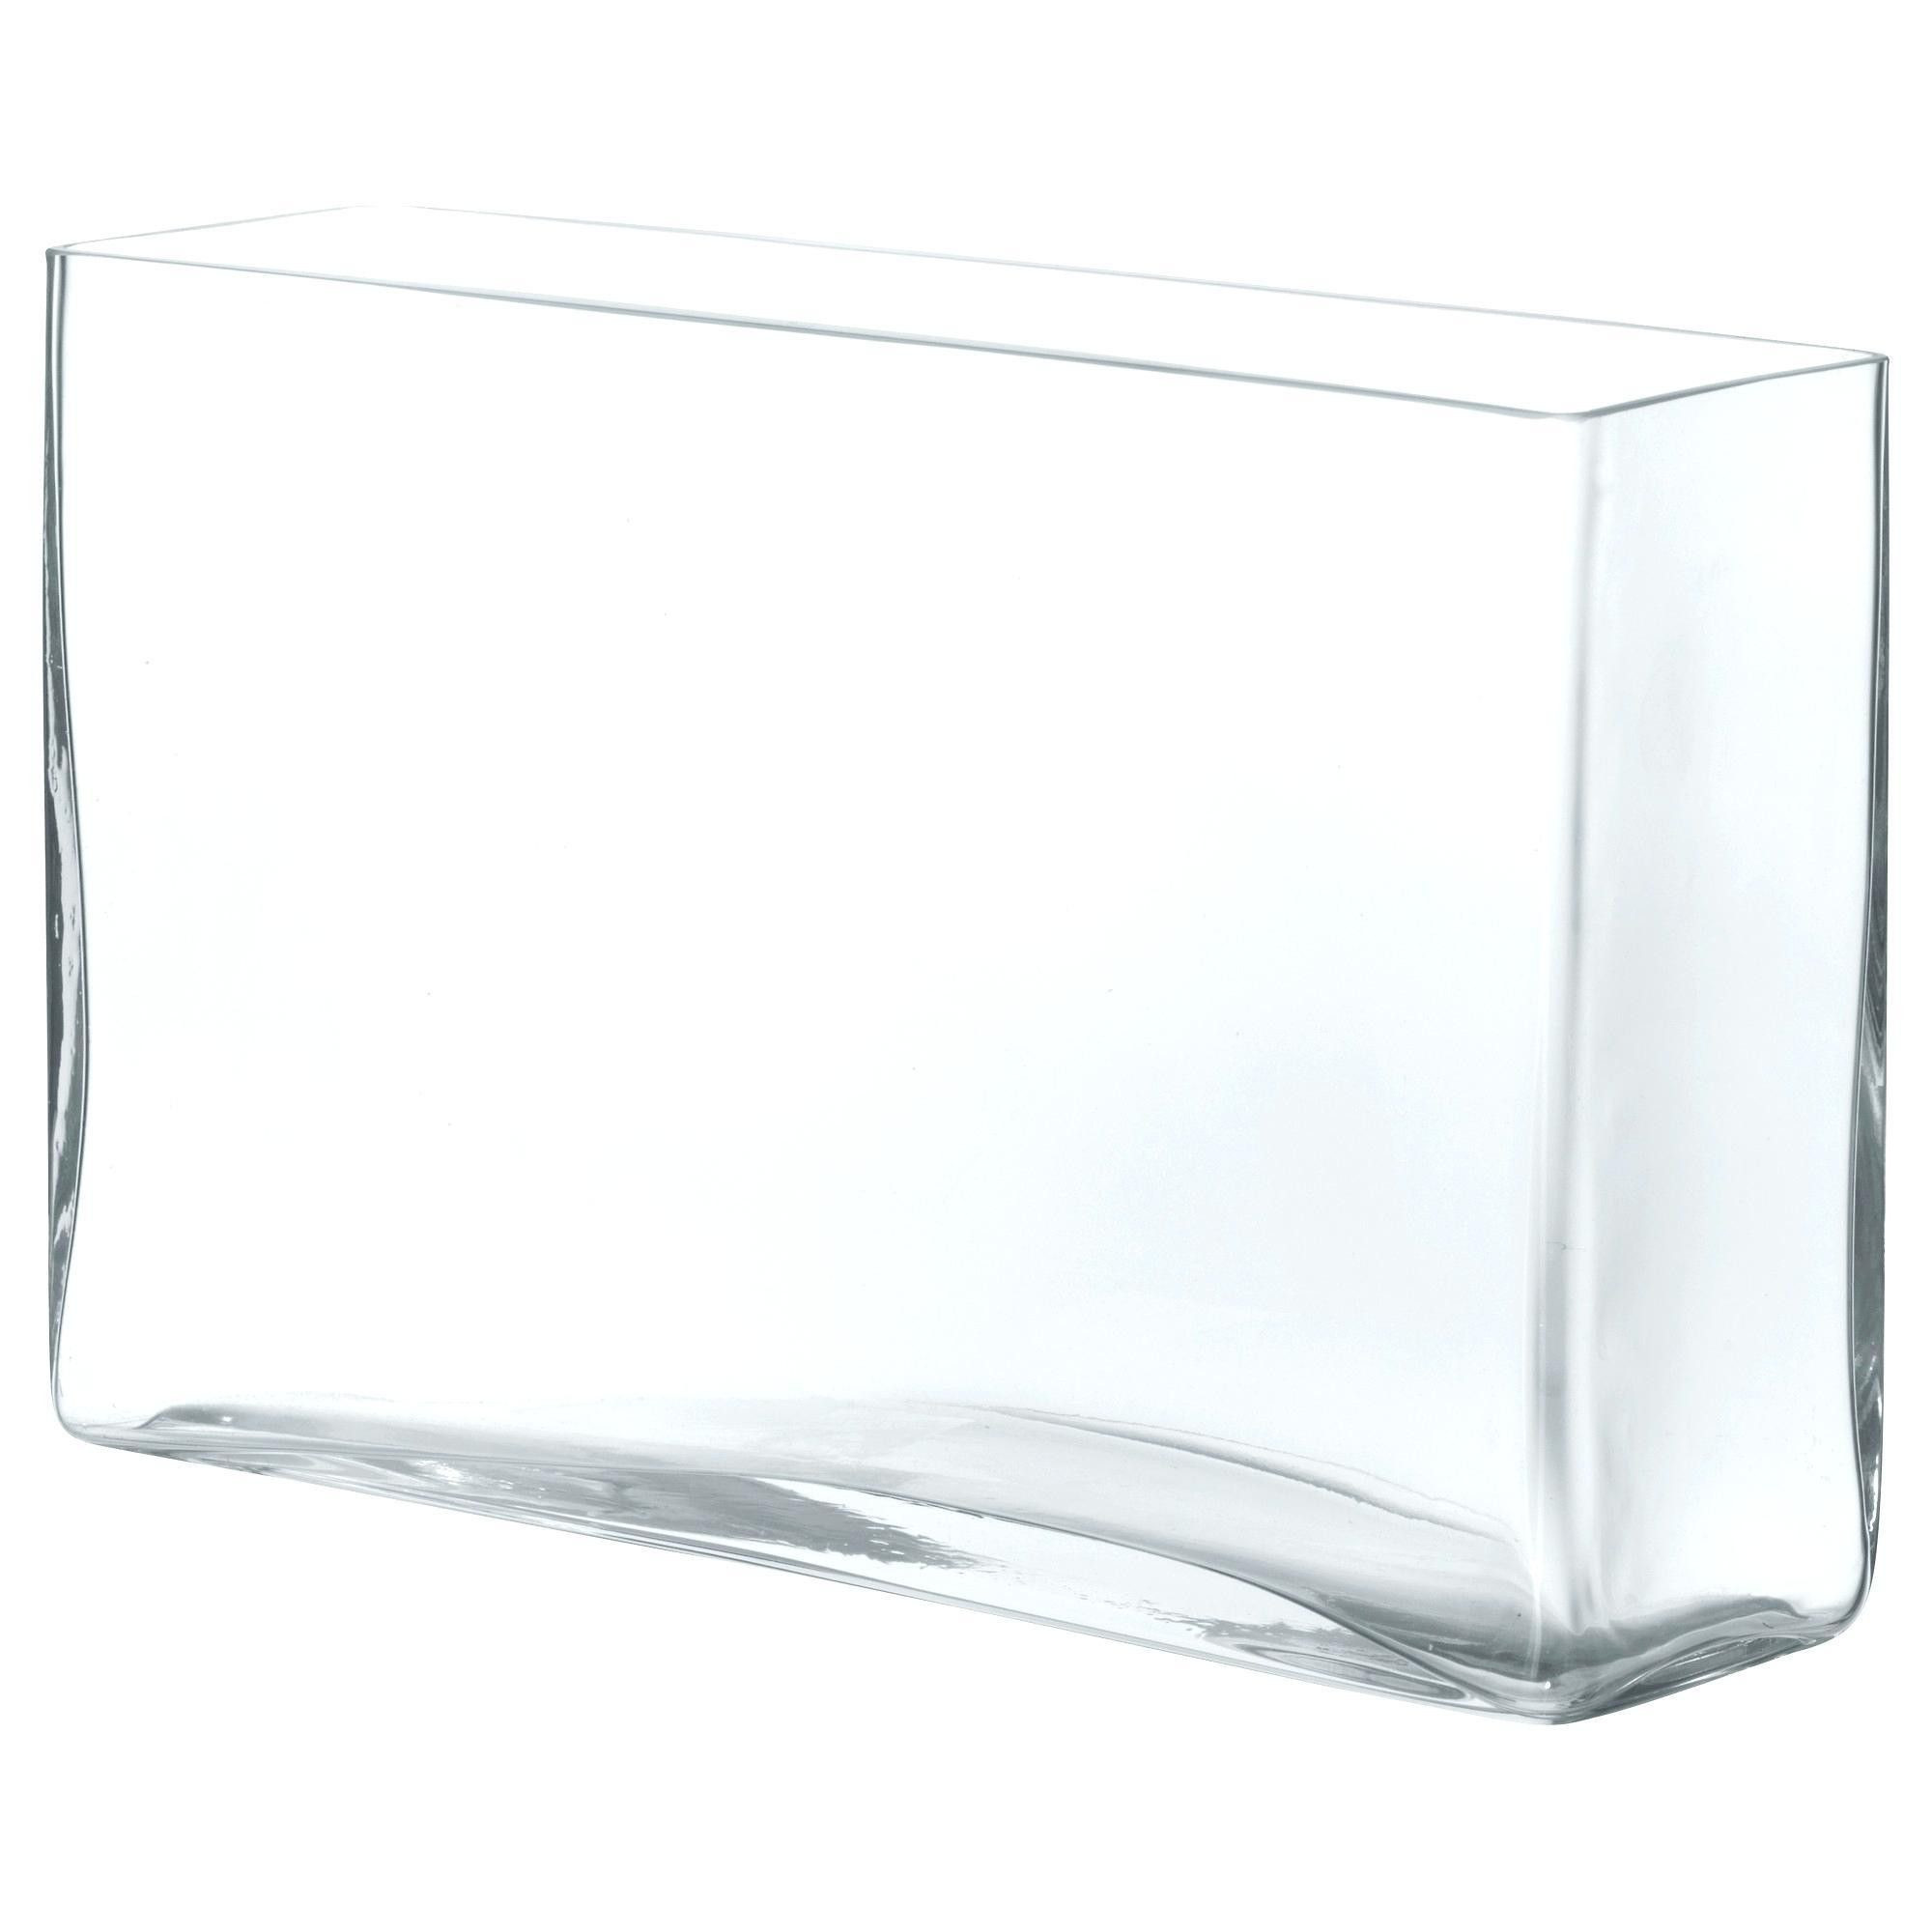 28 Recommended Small Square Vases wholesale